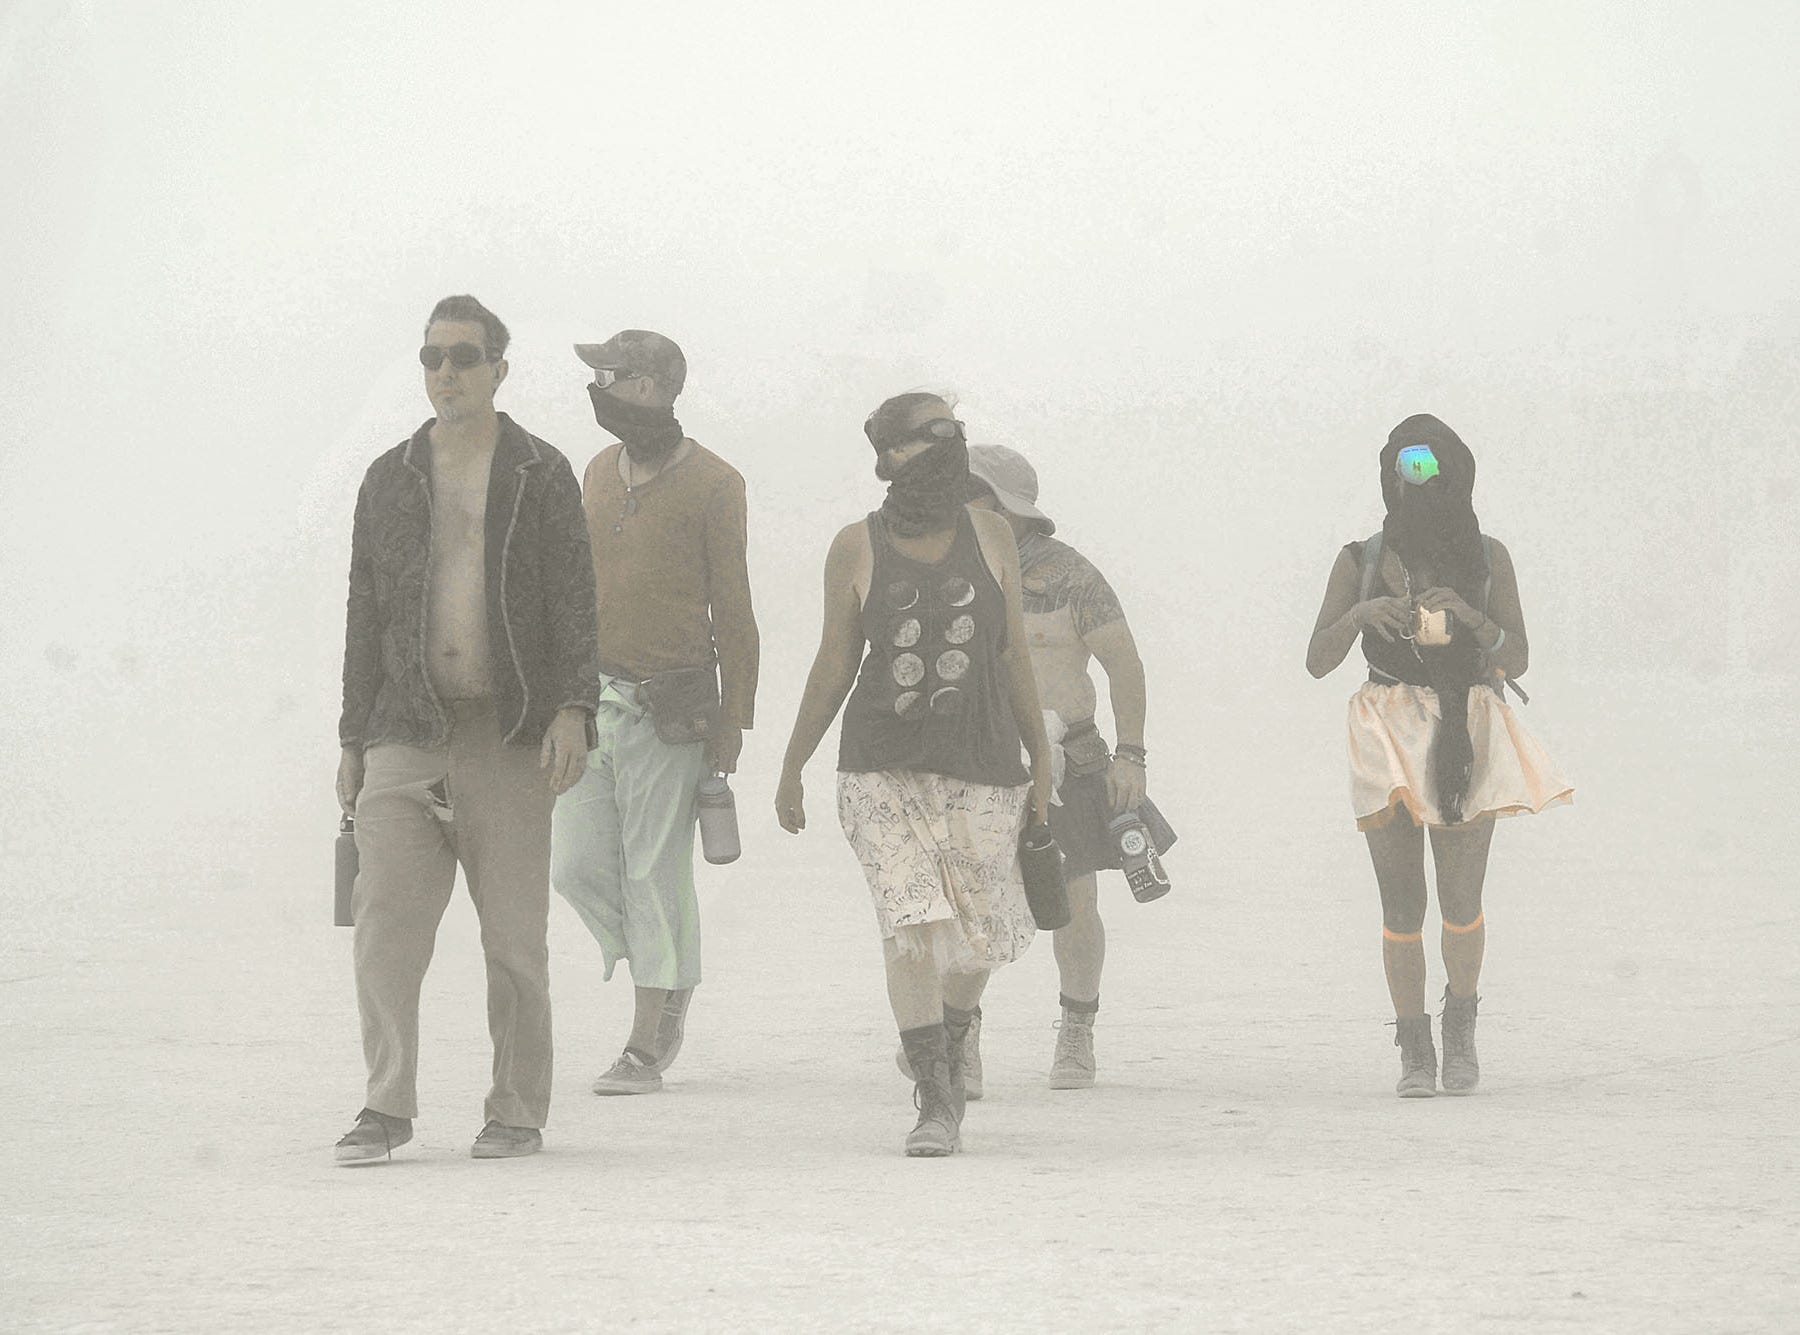 Burners enjoy a walk through a dust storm Sunday, Aug. 26, 2018 at Burning Man in the Nevada desert. The gates into the event were closed due to the storms.